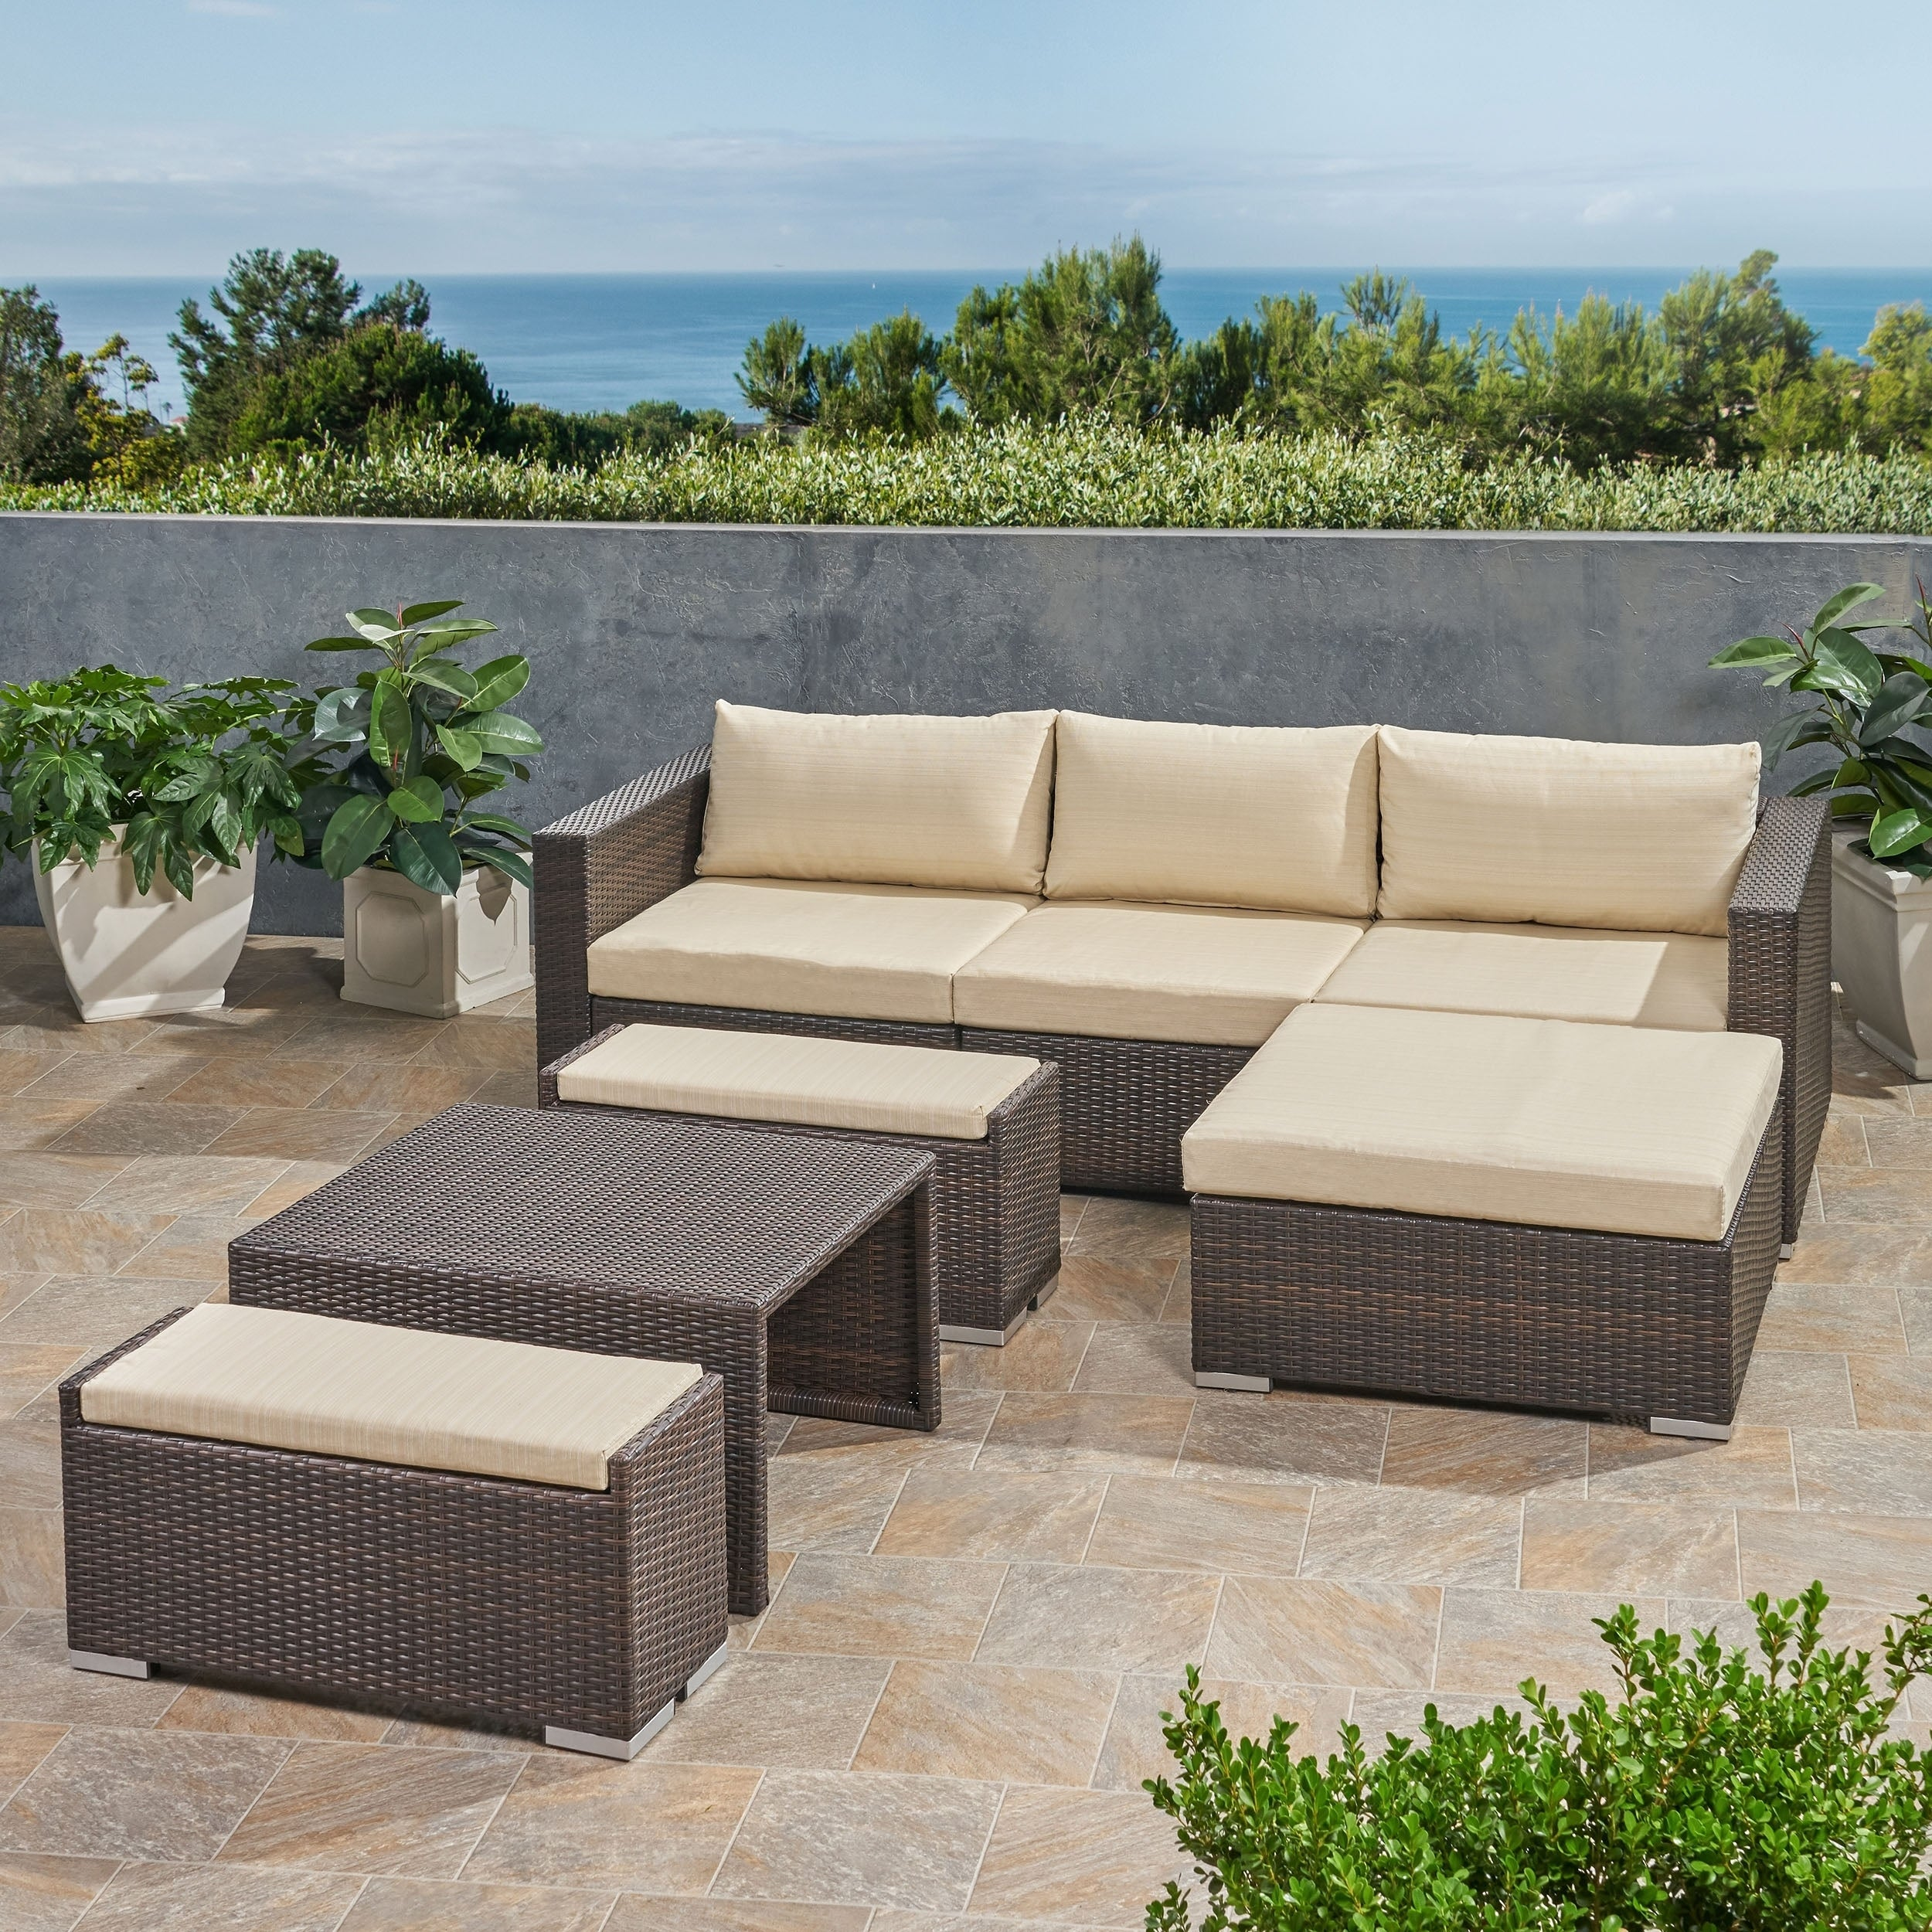 Outdoor 3 Seater Wicker L Shaped Sofa